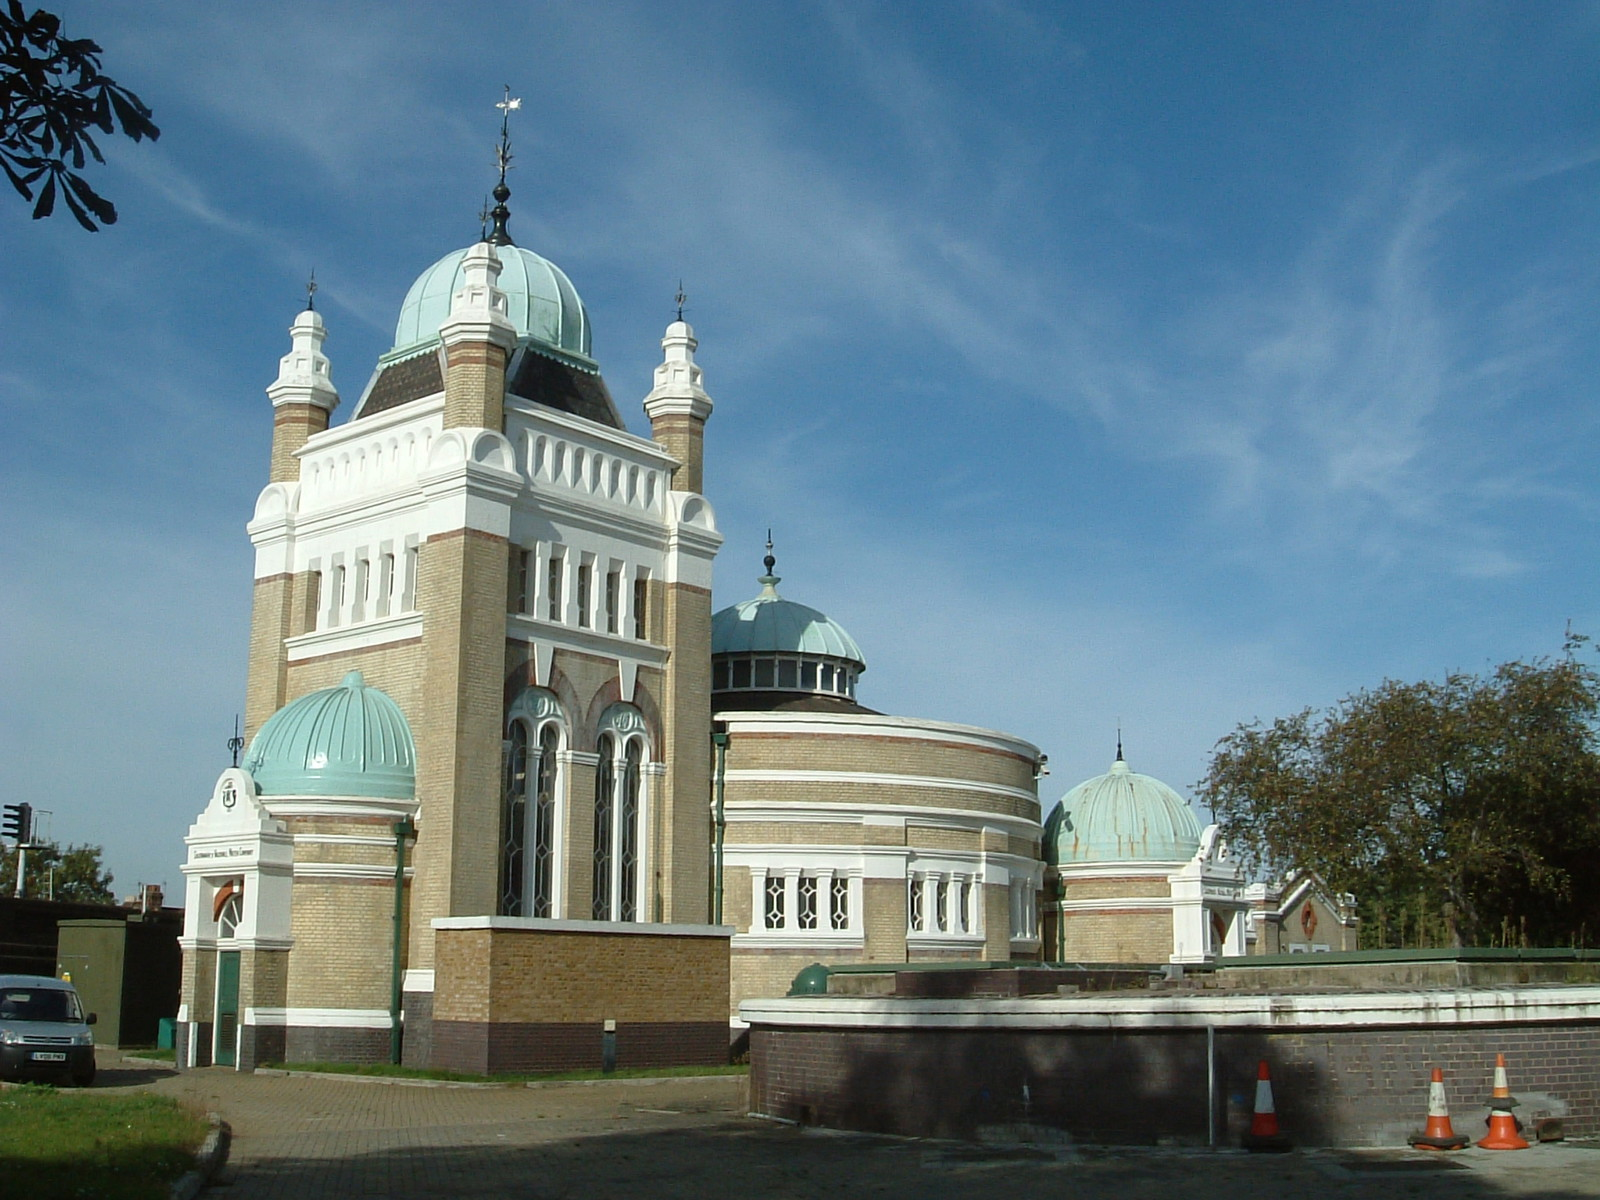 Streatham Pumping Station, built in 1888